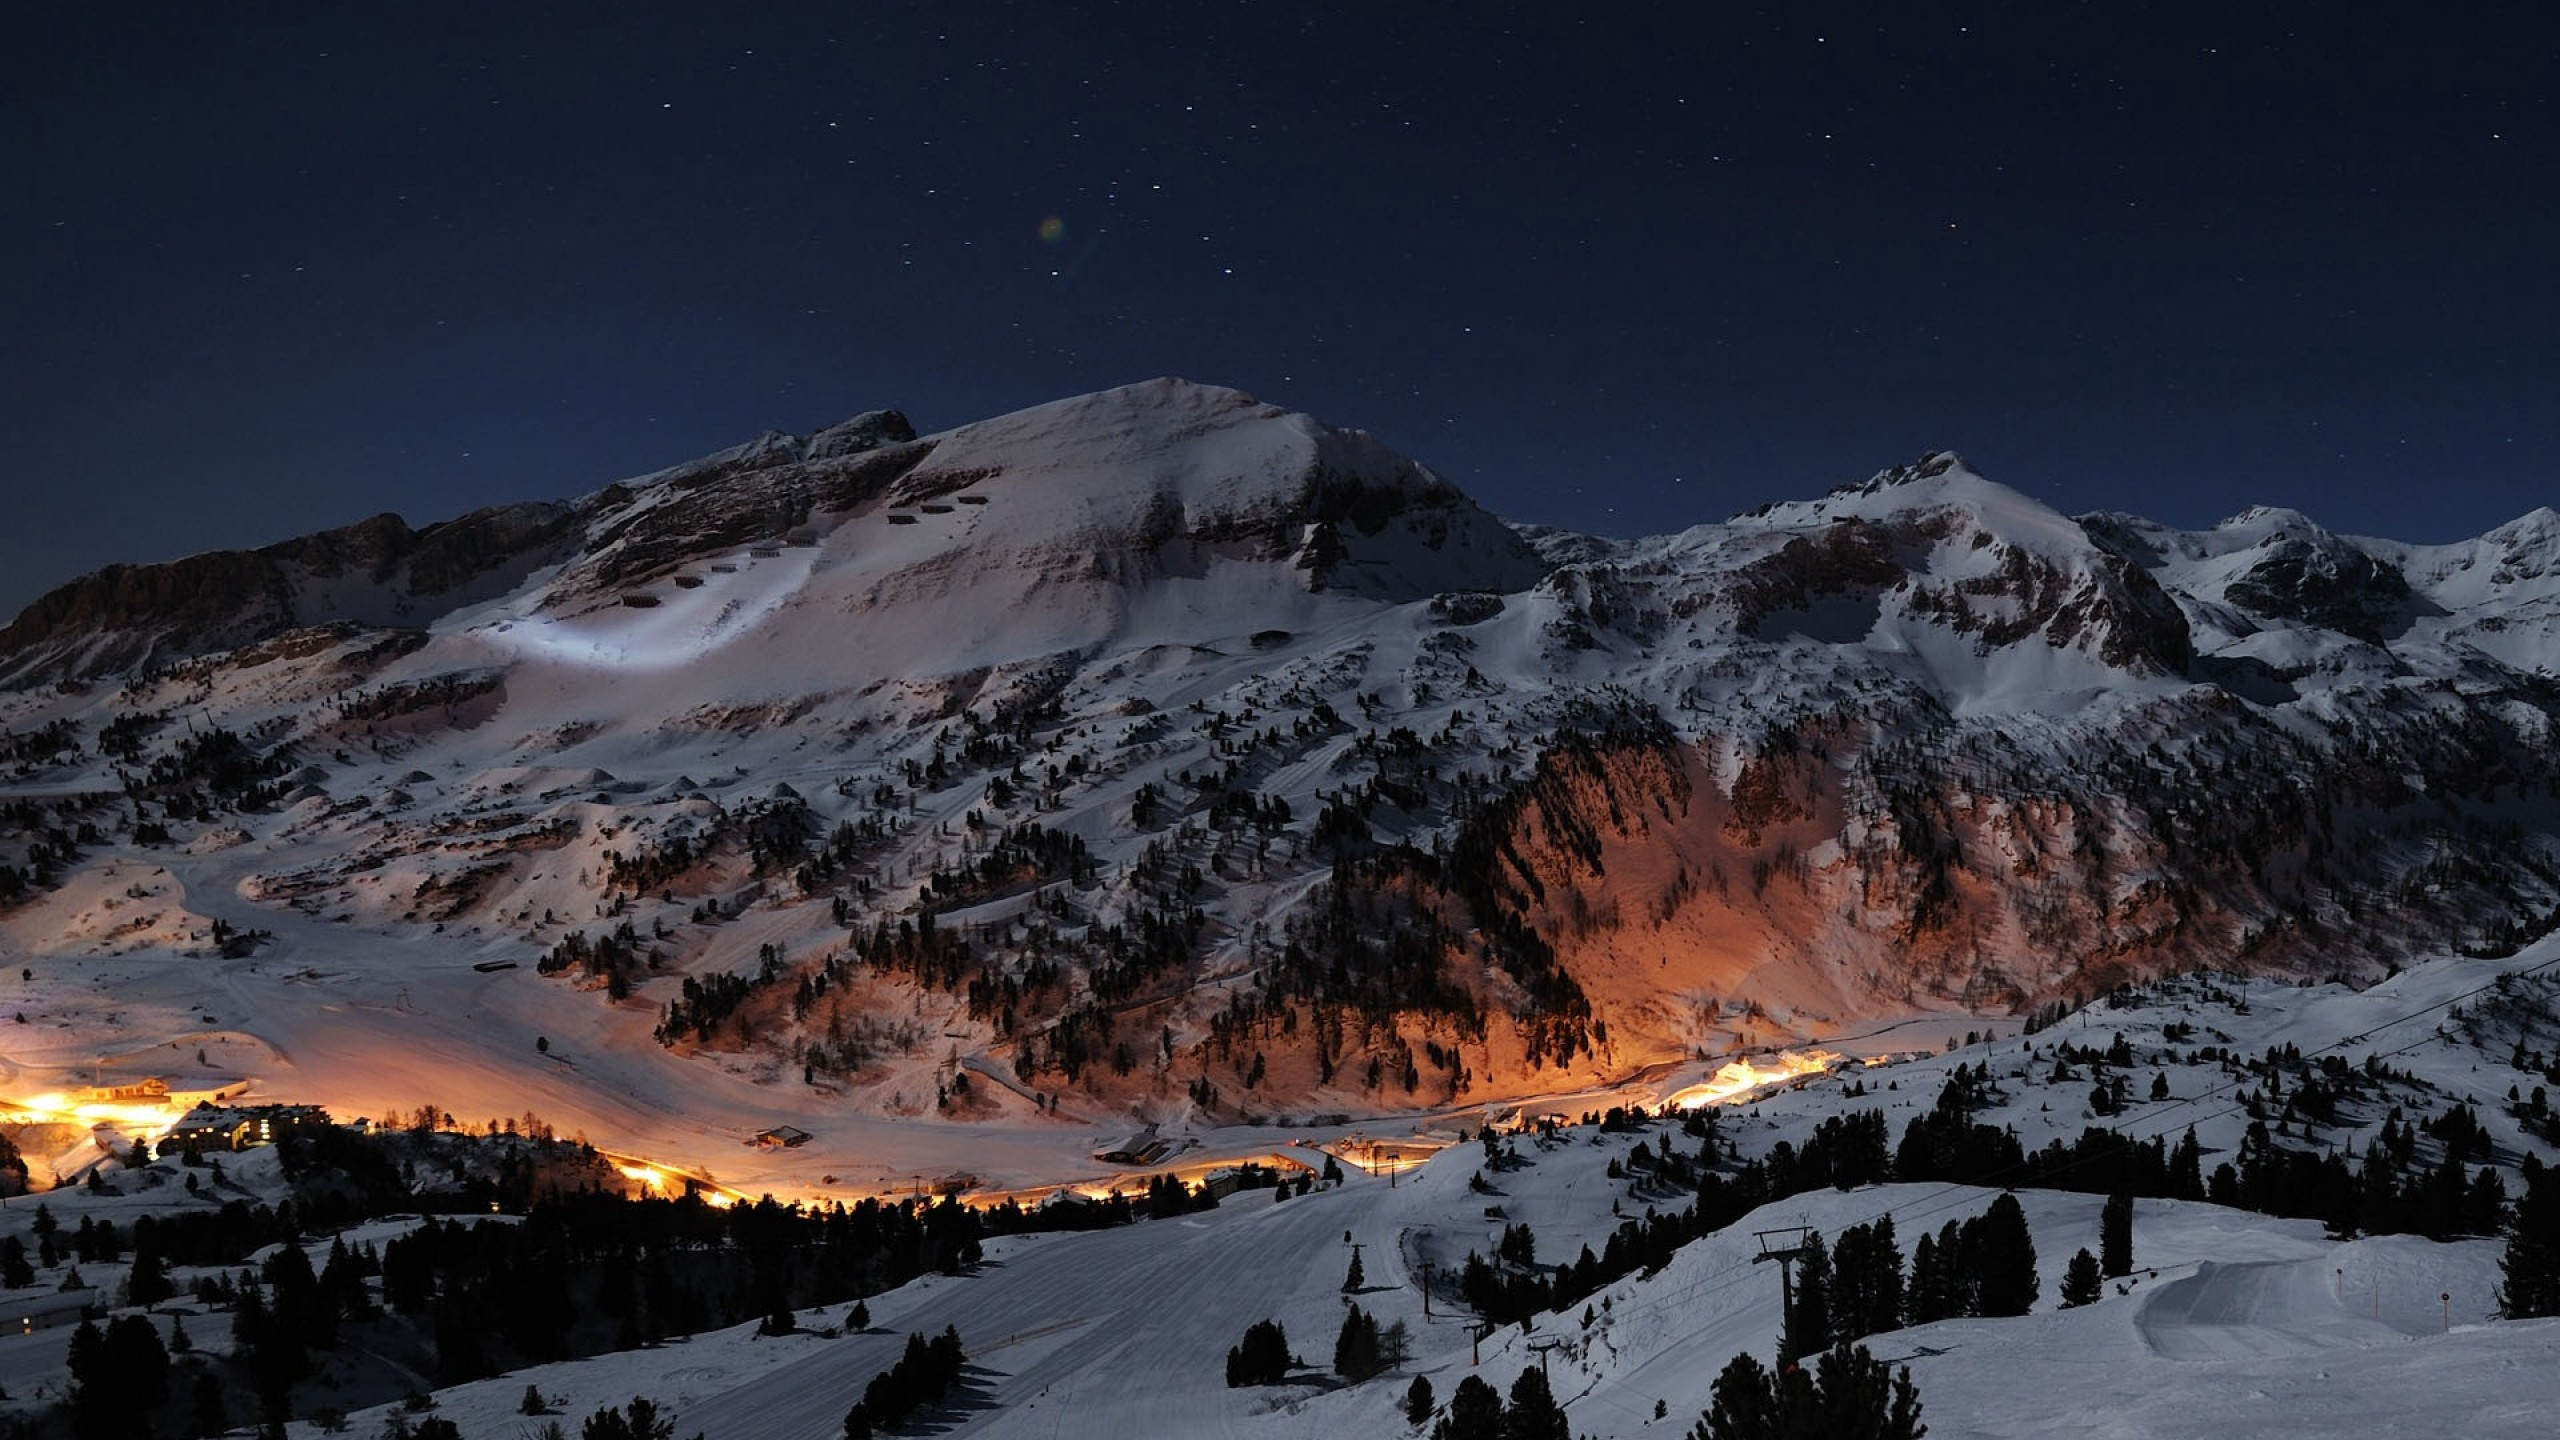 Night at the Alps HD Wallpaper